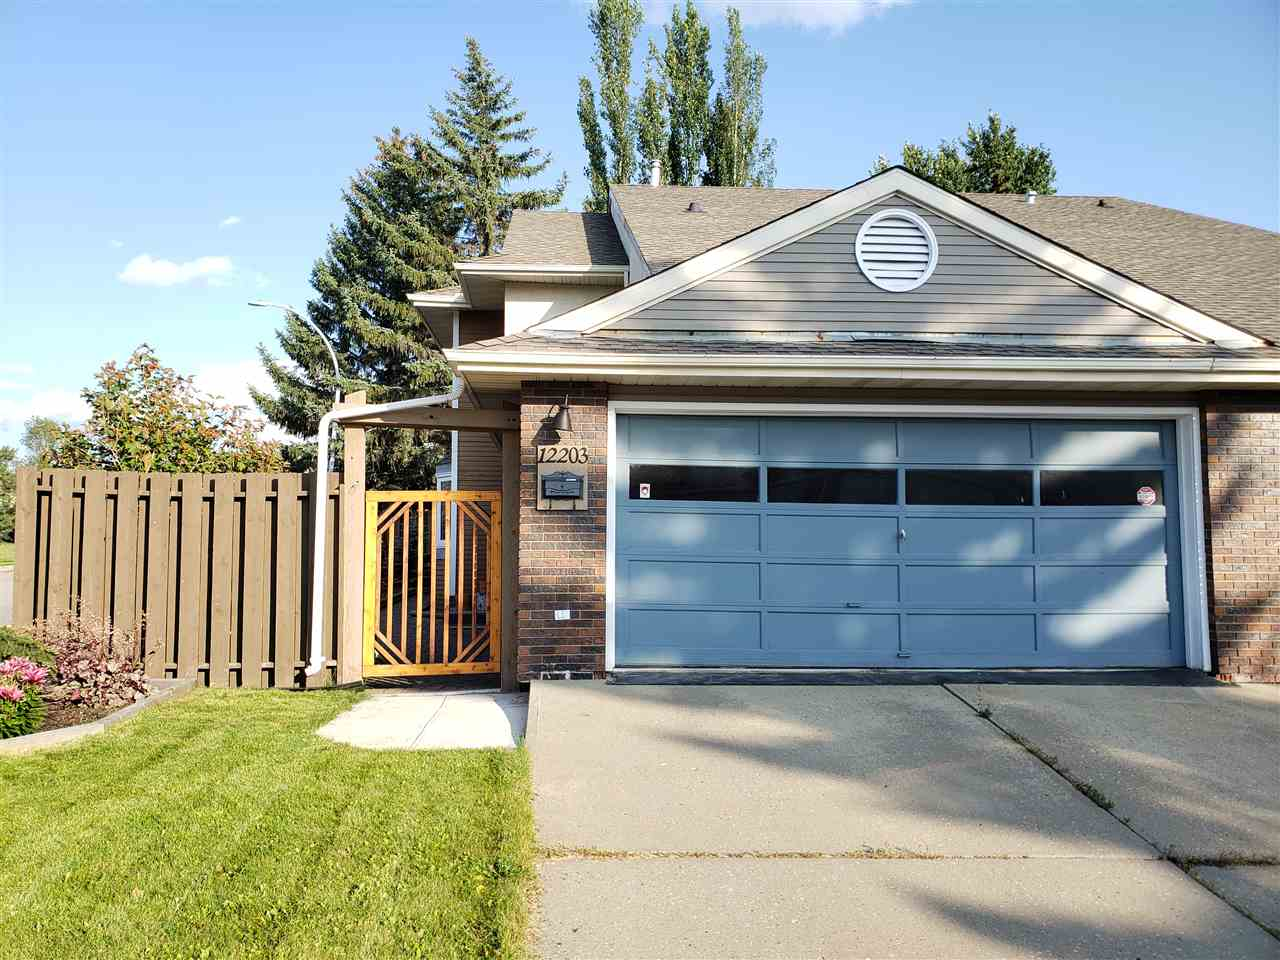 MLS® listing #E4169577 for sale located at 12203 25 Avenue